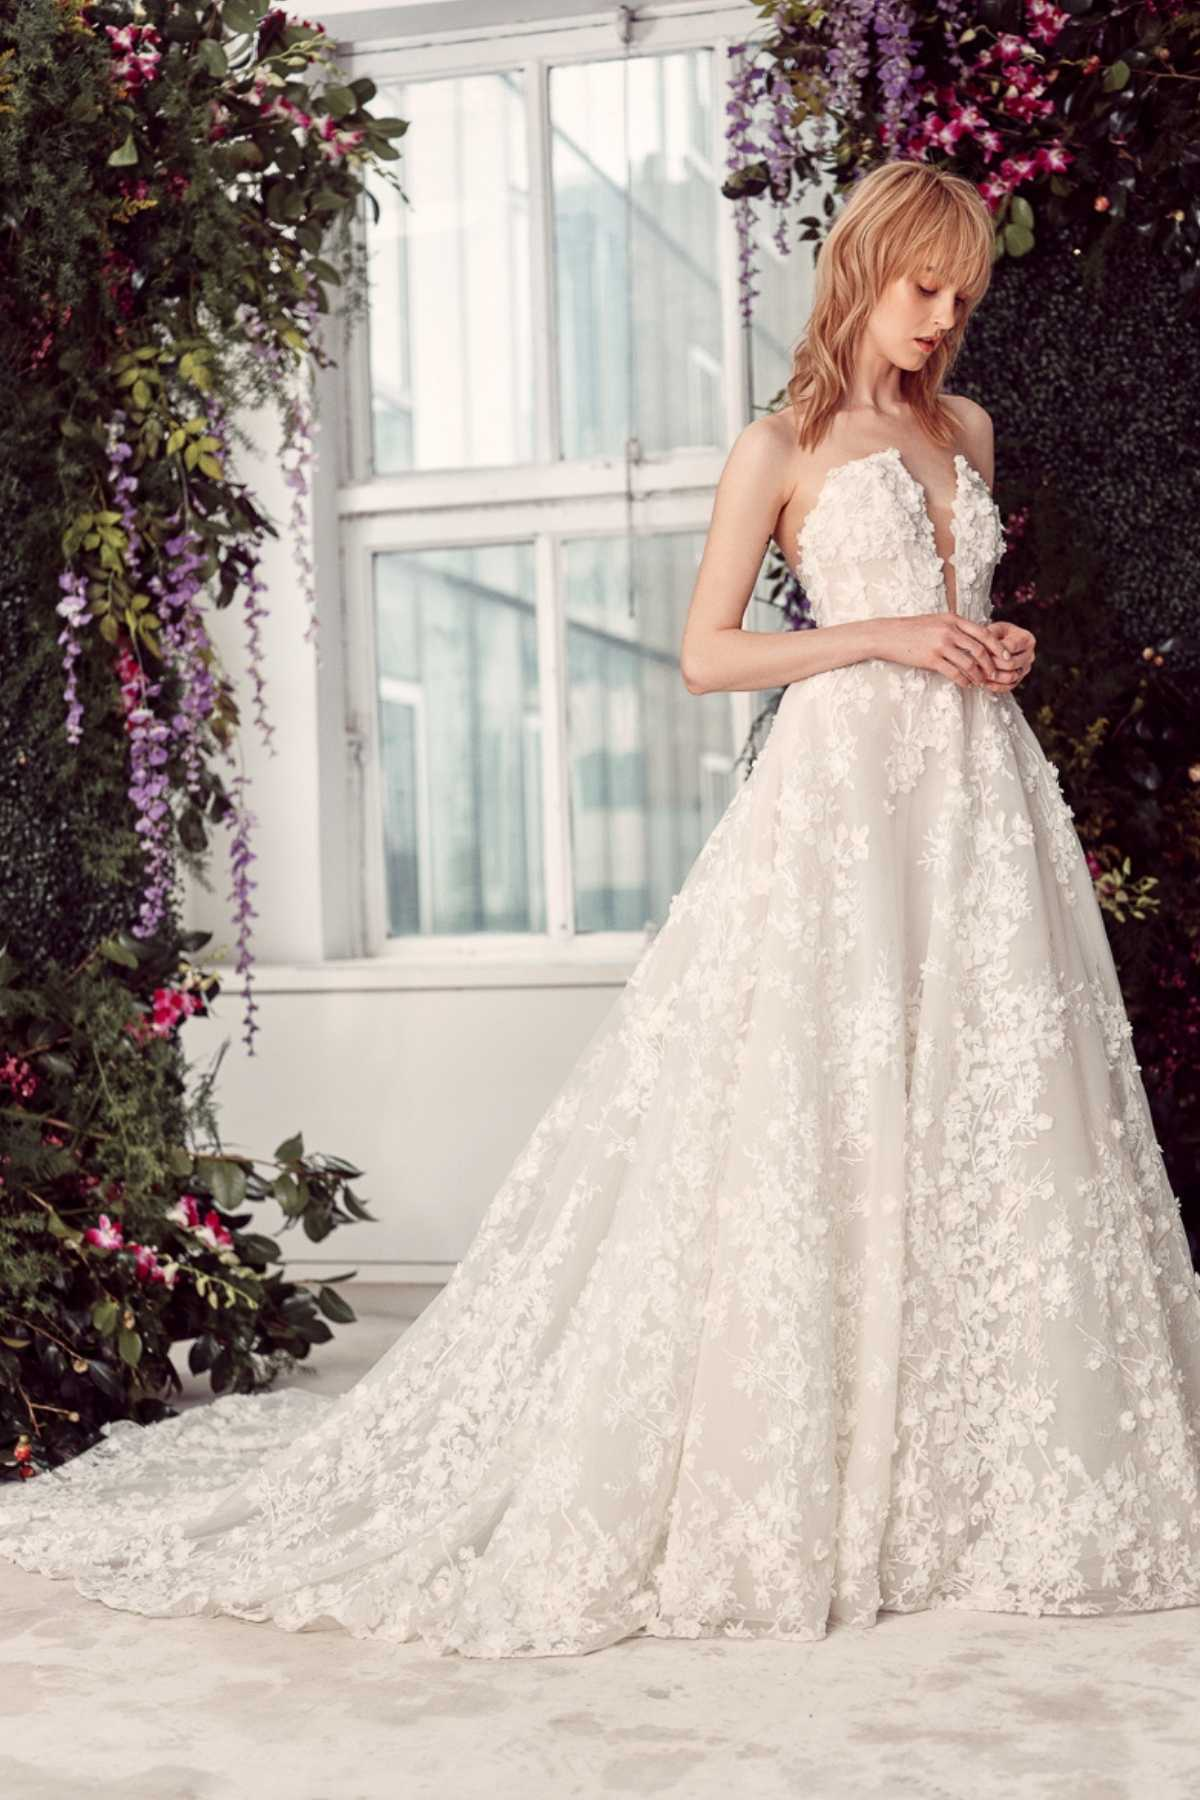 7. Rivini // FLORAL LACE EMBROIDERED STRAPLESS BALL GOWN WEDDING DRESS WITH PLUNGING V-NECKLINE